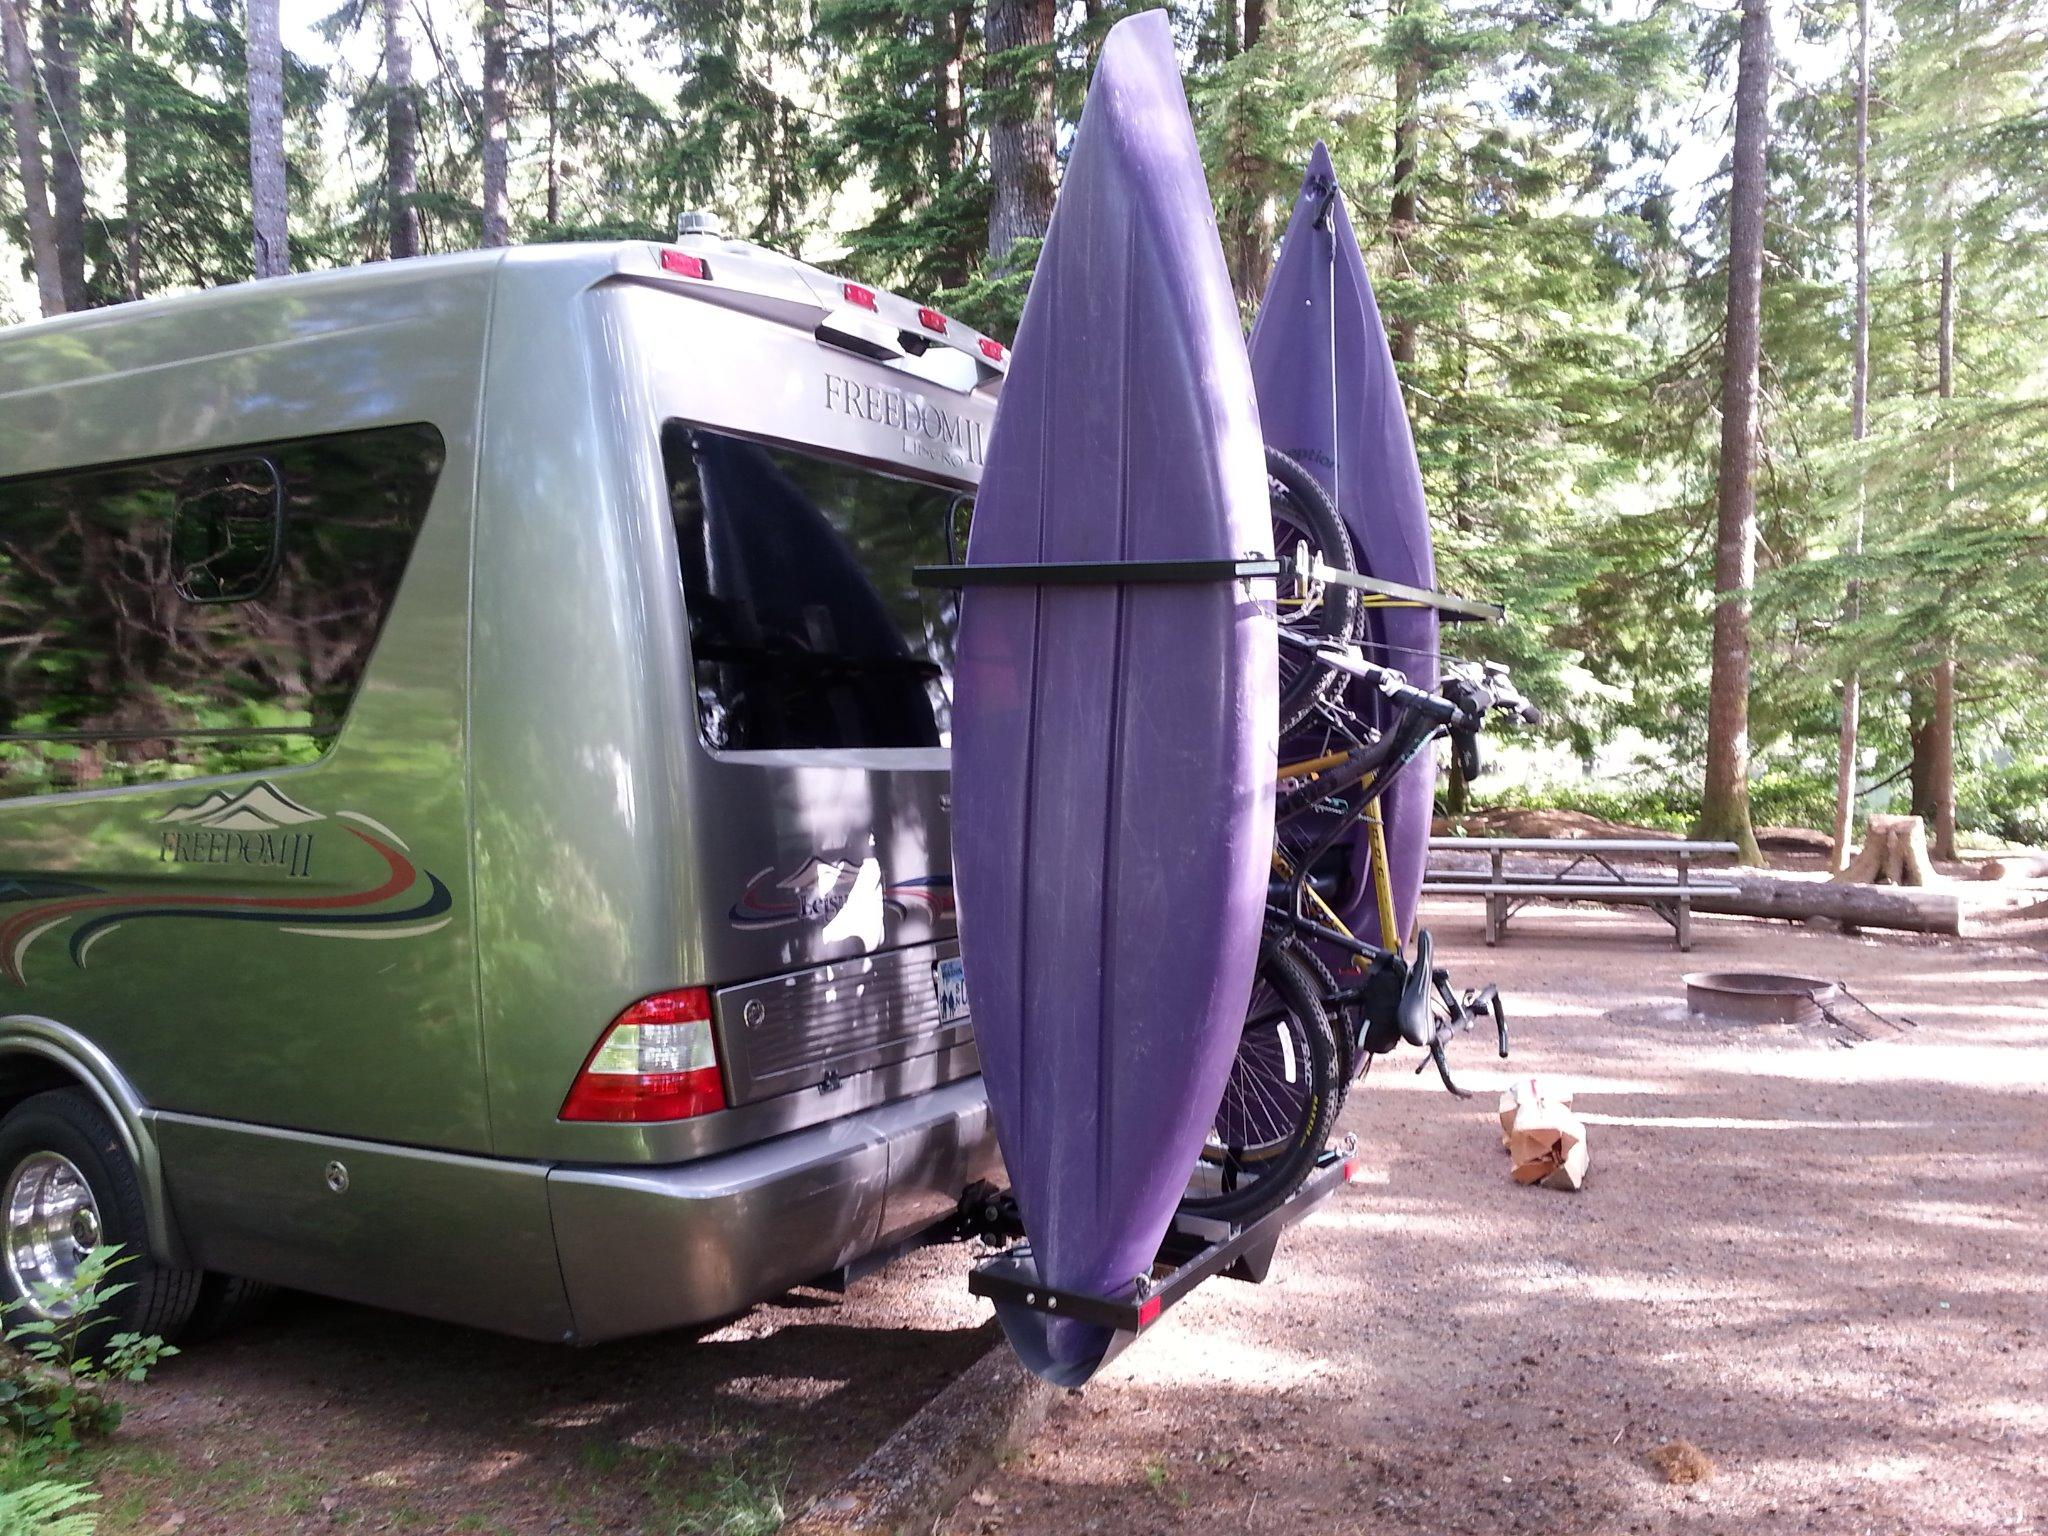 thule canoe size no love forums enough setup on though and net each am rack that my what required tundratalk kayaks sure bars for you room i drilling not need hauling rv tundra toyota forum towing kayak racks still discussion have side